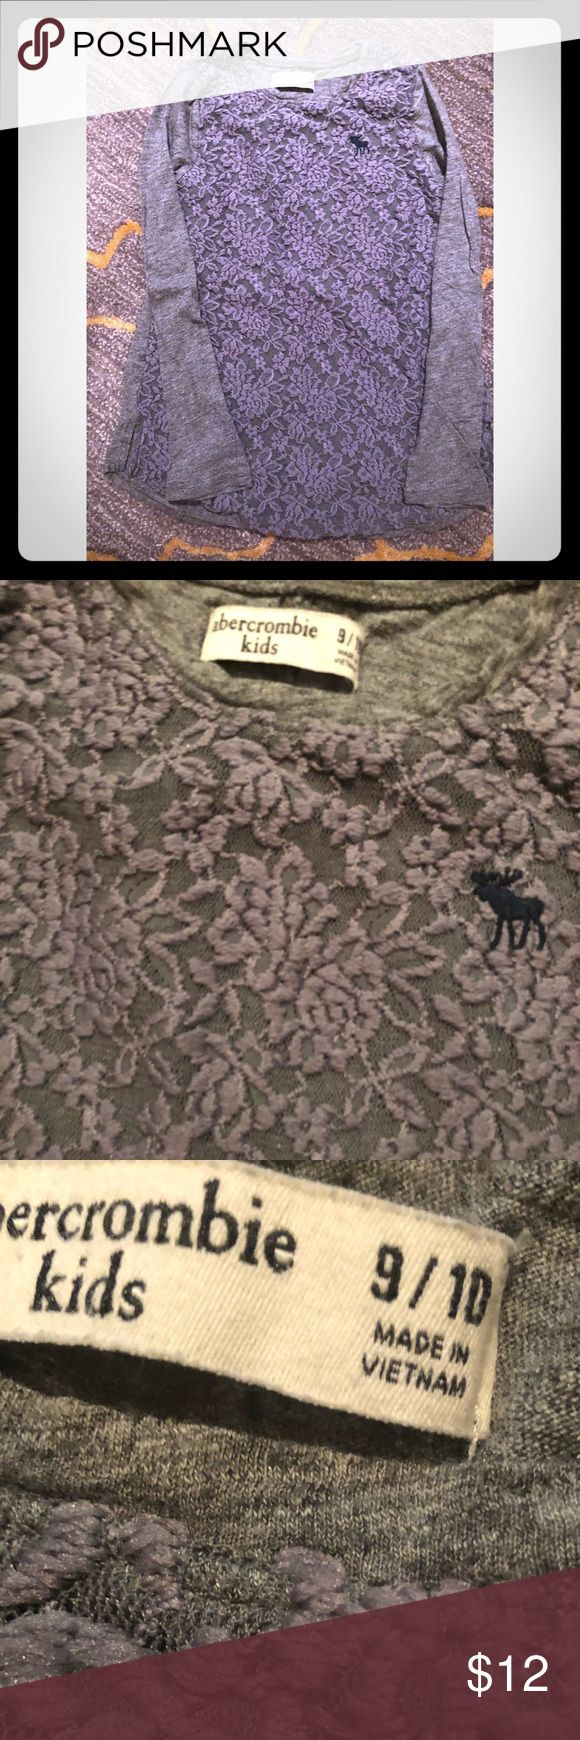 Abercrombie Girls Top Size 9/10 Abercrombie Girls Top Size 9/10 in good condition.  Gray with gray lace.  From a smoke/pet free home. abercrombie kids Shirts & Tops Tees - Long Sleeve